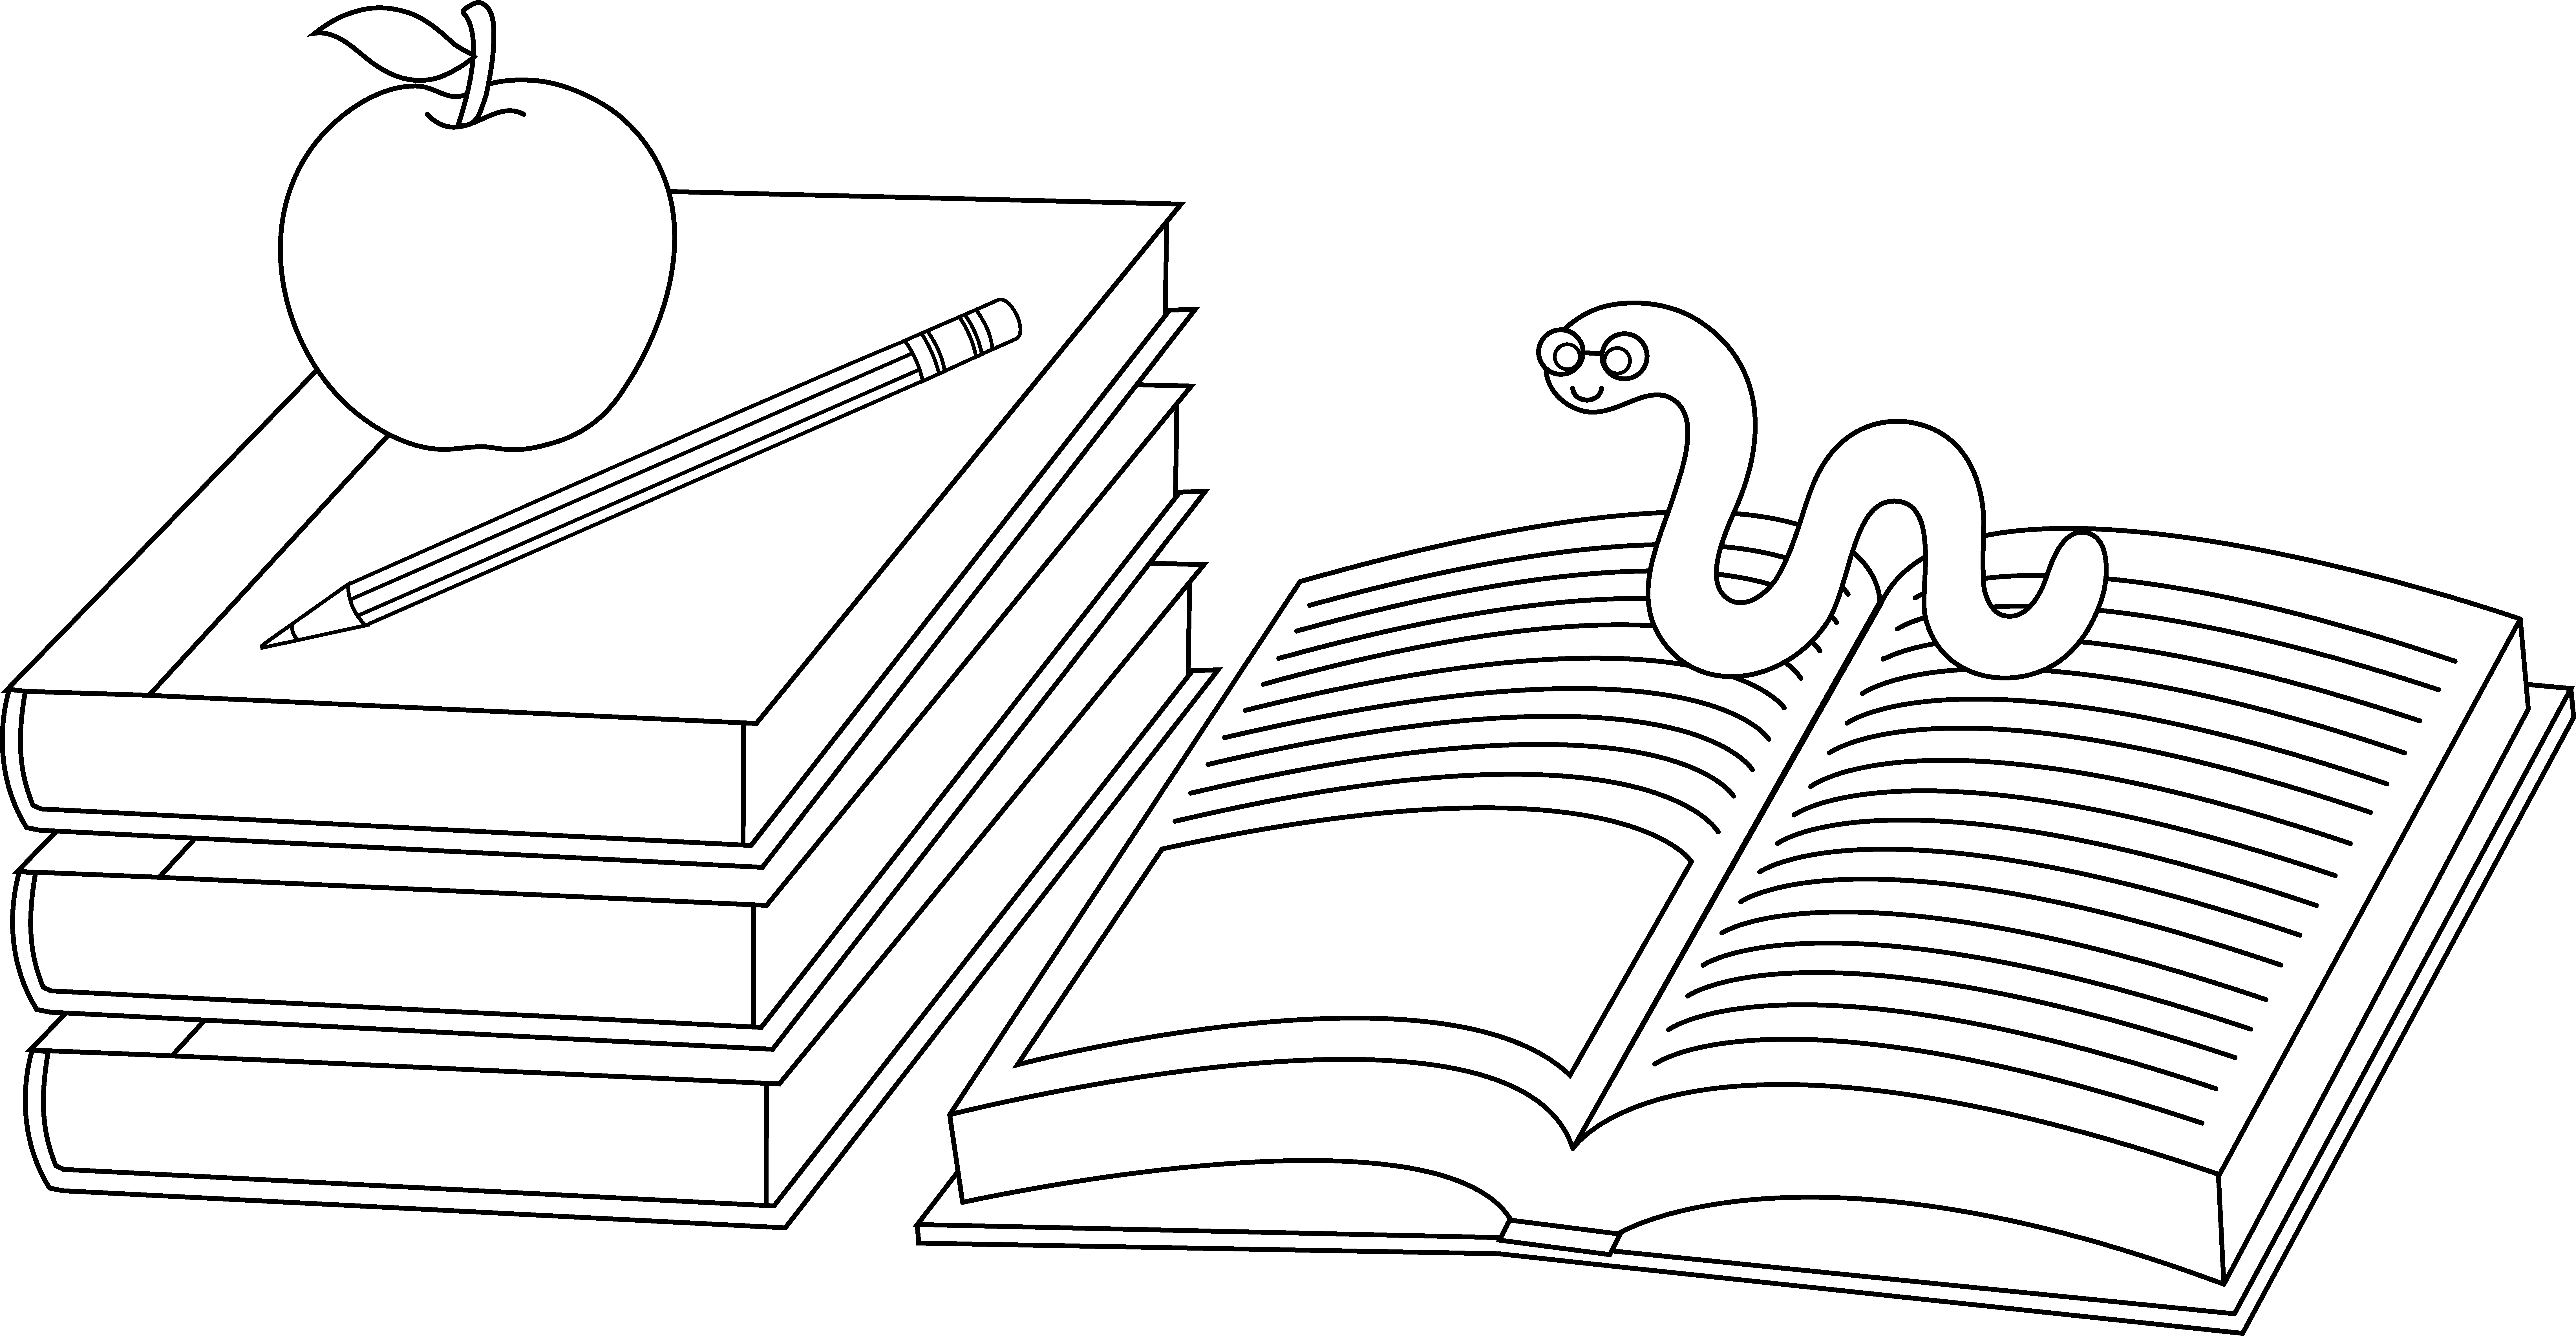 Book worm clipart clipart royalty free stock Colorable School Books and Bookworm - Free Clip Art clipart royalty free stock